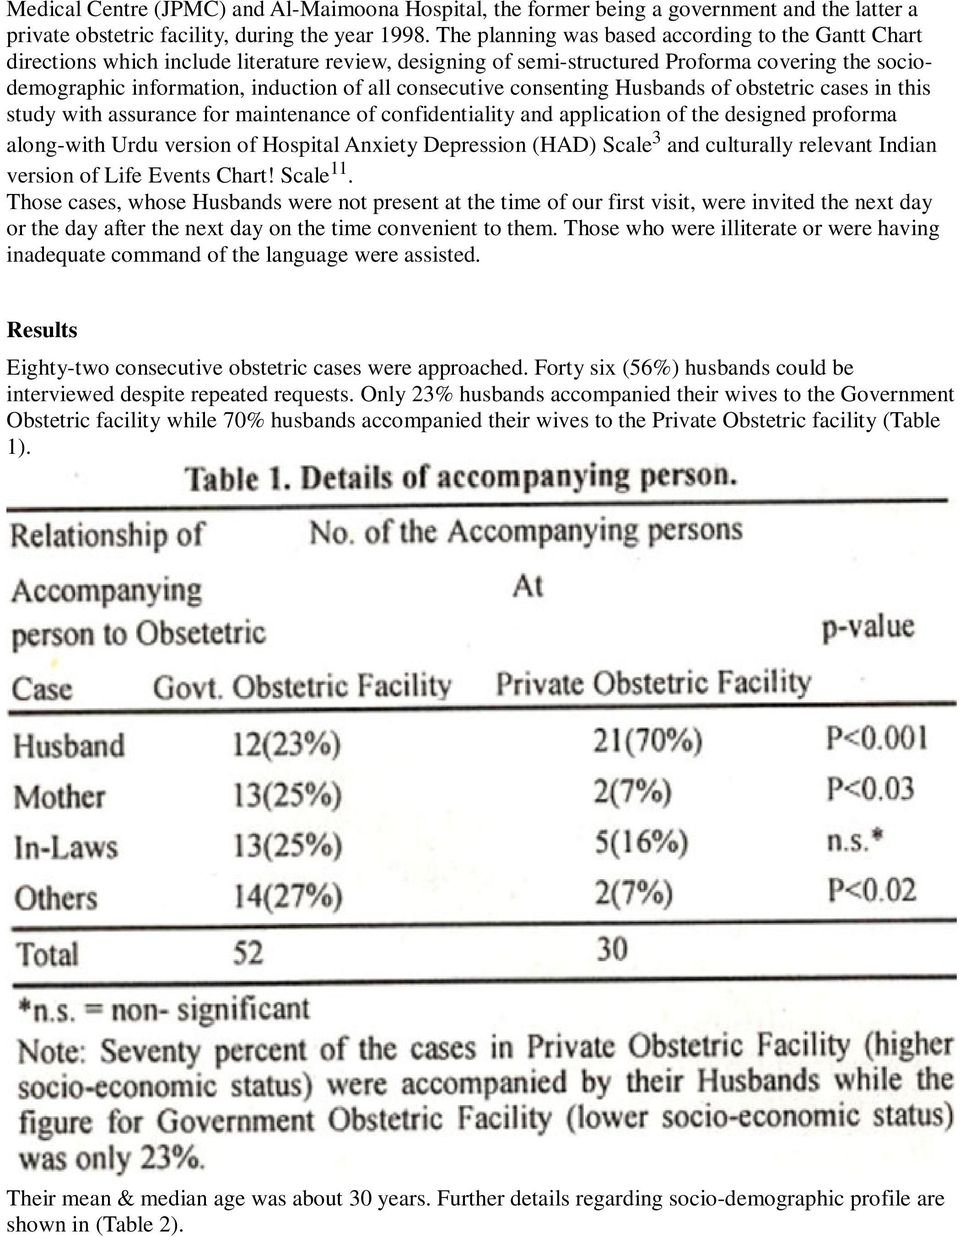 consecutive consenting Husbands of obstetric cases in this study with assurance for maintenance of confidentiality and application of the designed proforma along-with Urdu version of Hospital Anxiety